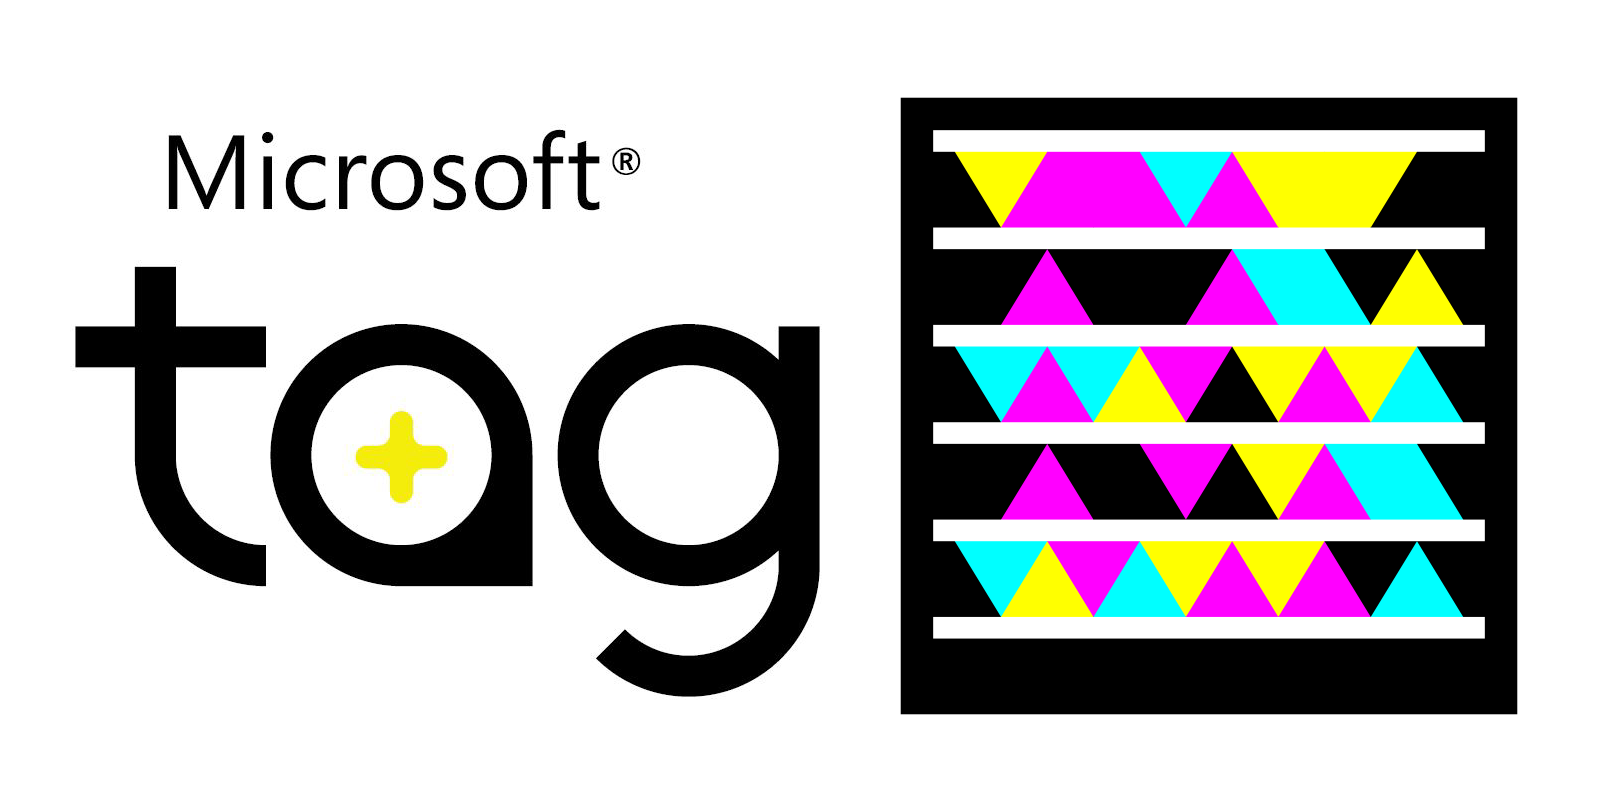 Microsoft Tag Logo and Barcode (2010)